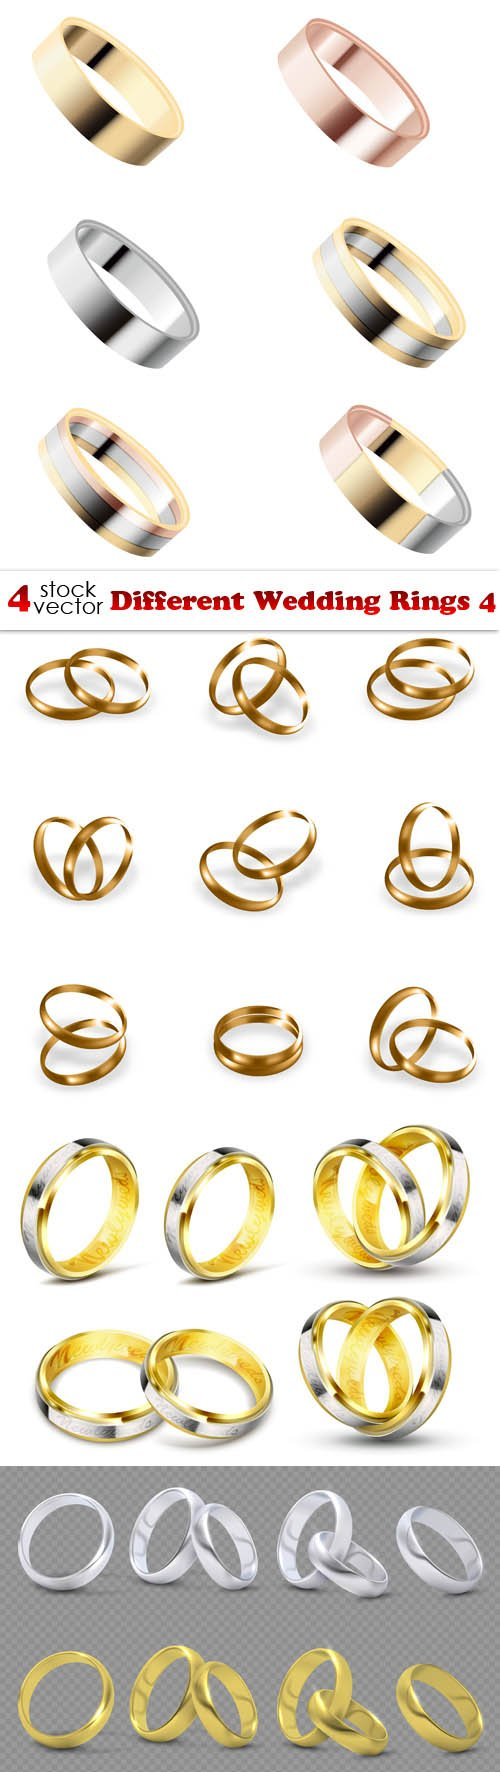 Vectors - Different Wedding Rings 4